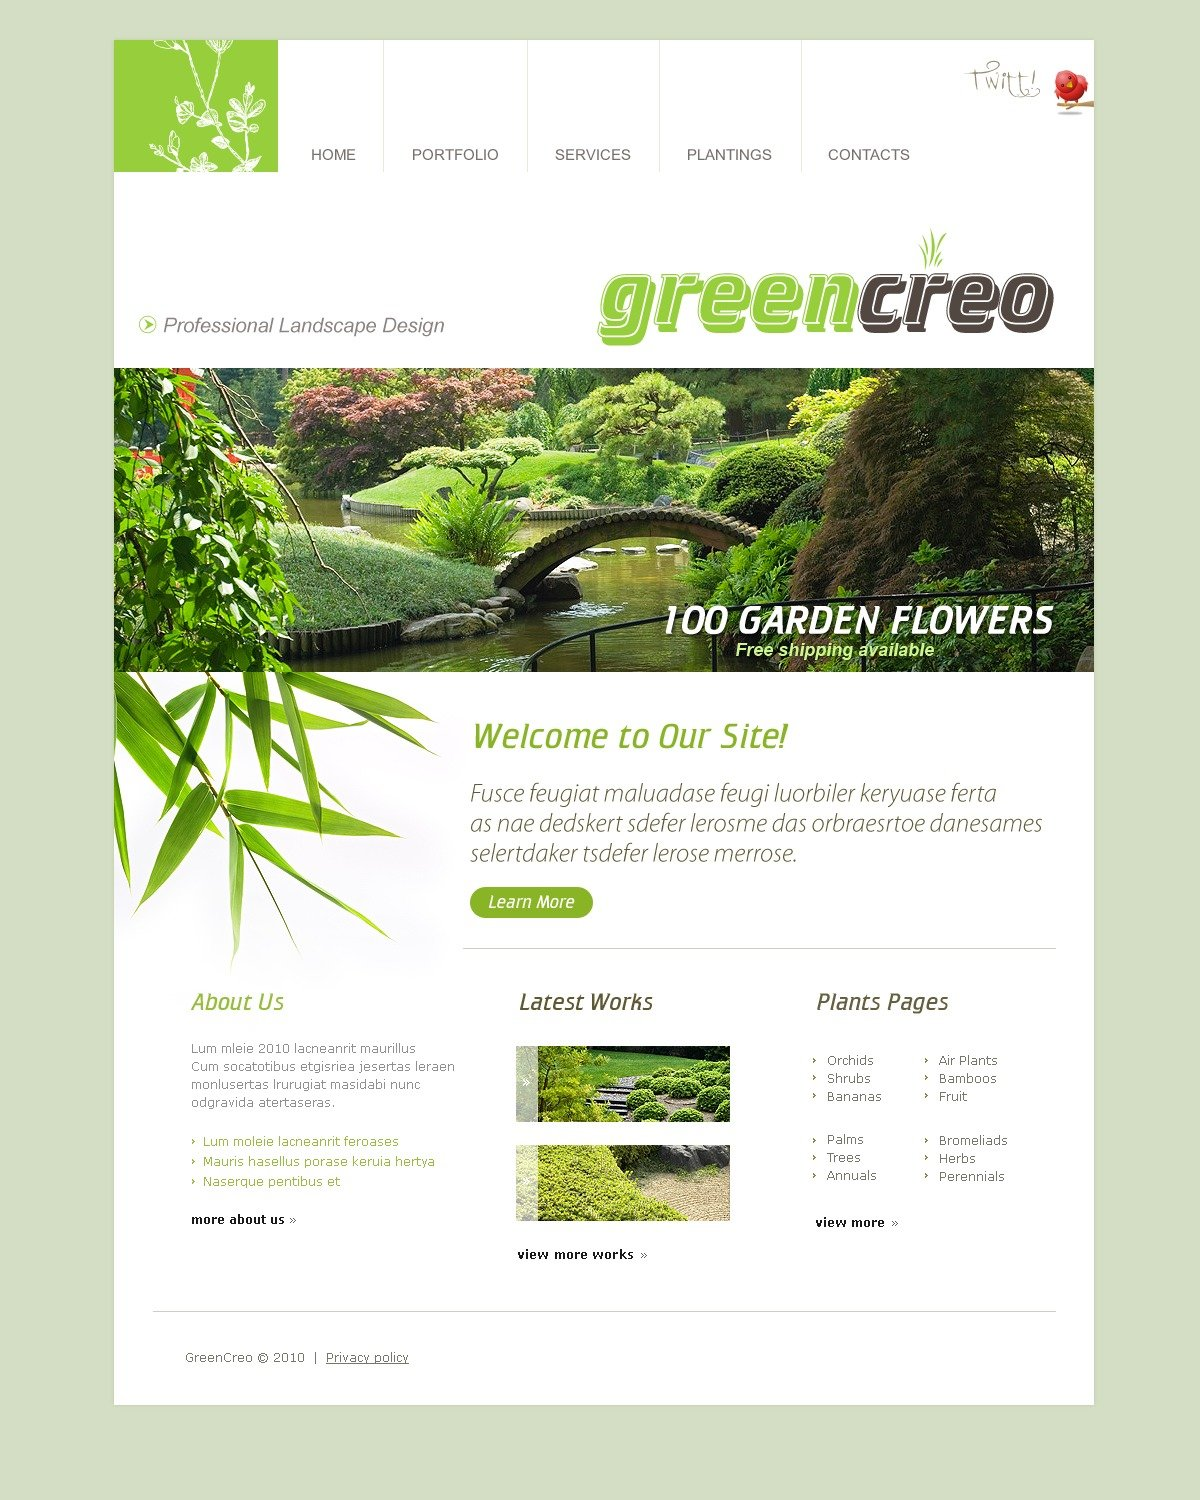 The Green Creo PSD Design 54165, one of the best PSD templates of its kind (exterior design, most popular, flash 8, wide), also known as green creo PSD template, exterior design bureau PSD template, landscape PSD template, grass PSD template, clipper PSD template, lawn-mover PSD template, grass-cutter PSD template, lawn PSD template, garden PSD template, herb PSD template, shrub PSD template, tree PSD template, palm PSD template, planting PSD template, bamboo PSD template, fern company PSD template, profile PSD template, testimonials PSD template, education PSD template, work PSD template, team PSD template, staff PSD template, services PSD template, commercial PSD template, clients PSD template, residential PSD template, special technologies PSD template, des and related with green creo, exterior design bureau, landscape, grass, clipper, lawn-mover, grass-cutter, lawn, garden, herb, shrub, tree, palm, planting, bamboo, fern company, profile, testimonials, education, work, team, staff, services, commercial, clients, residential, special technologies, des, etc.